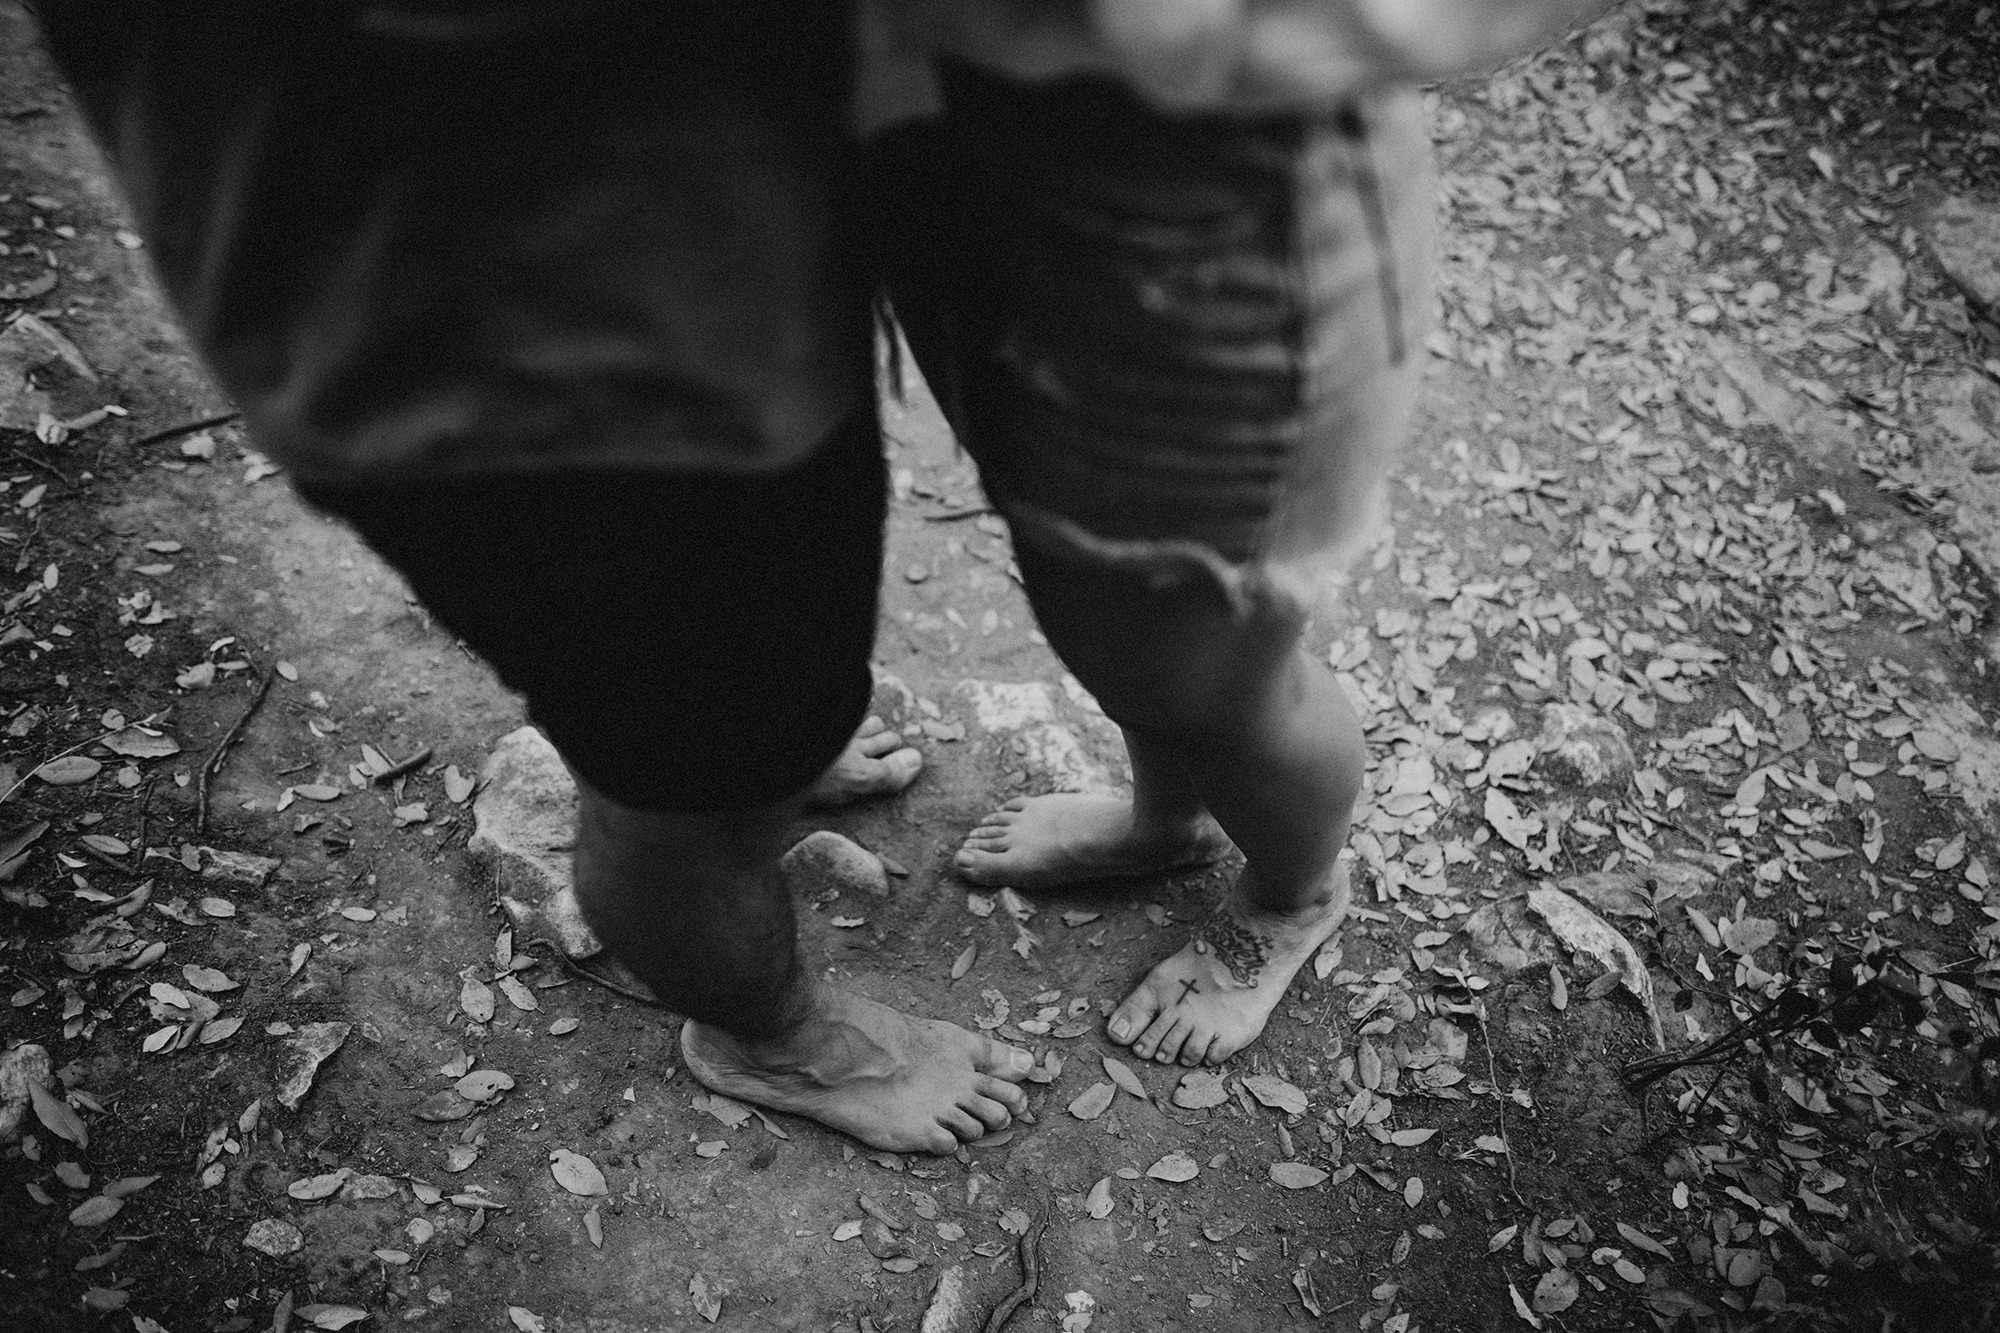 engagement_session_ardeche_river_C+M_neupapphotography-91.jpg